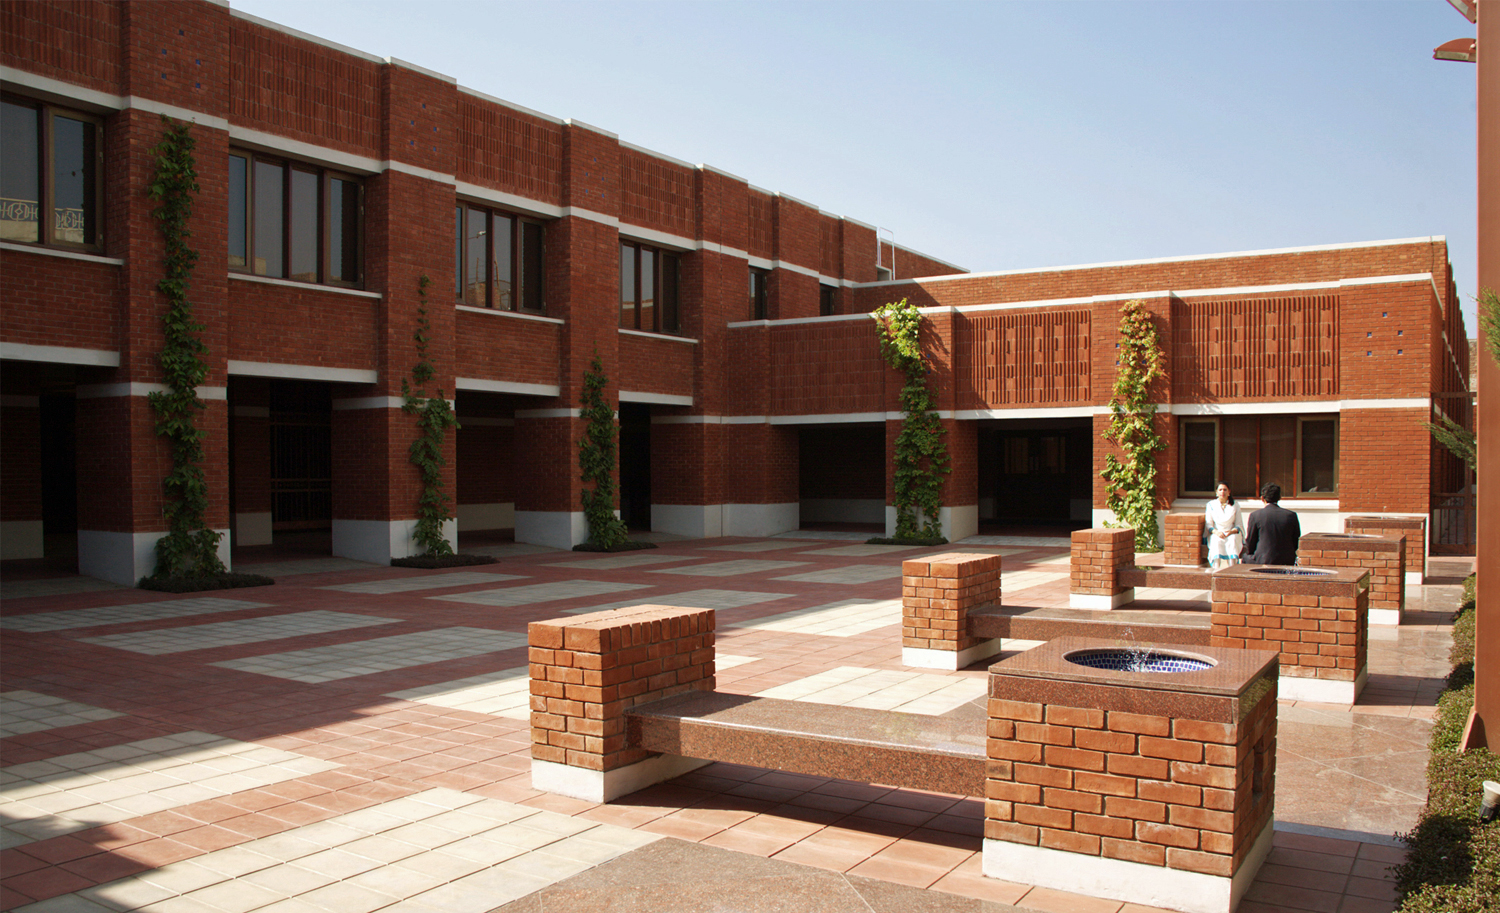 The Grand Courtyard at the Ismaili Jamatkhana Lahore. Photo: Courtesy of the Ismaili Council for Pakistan